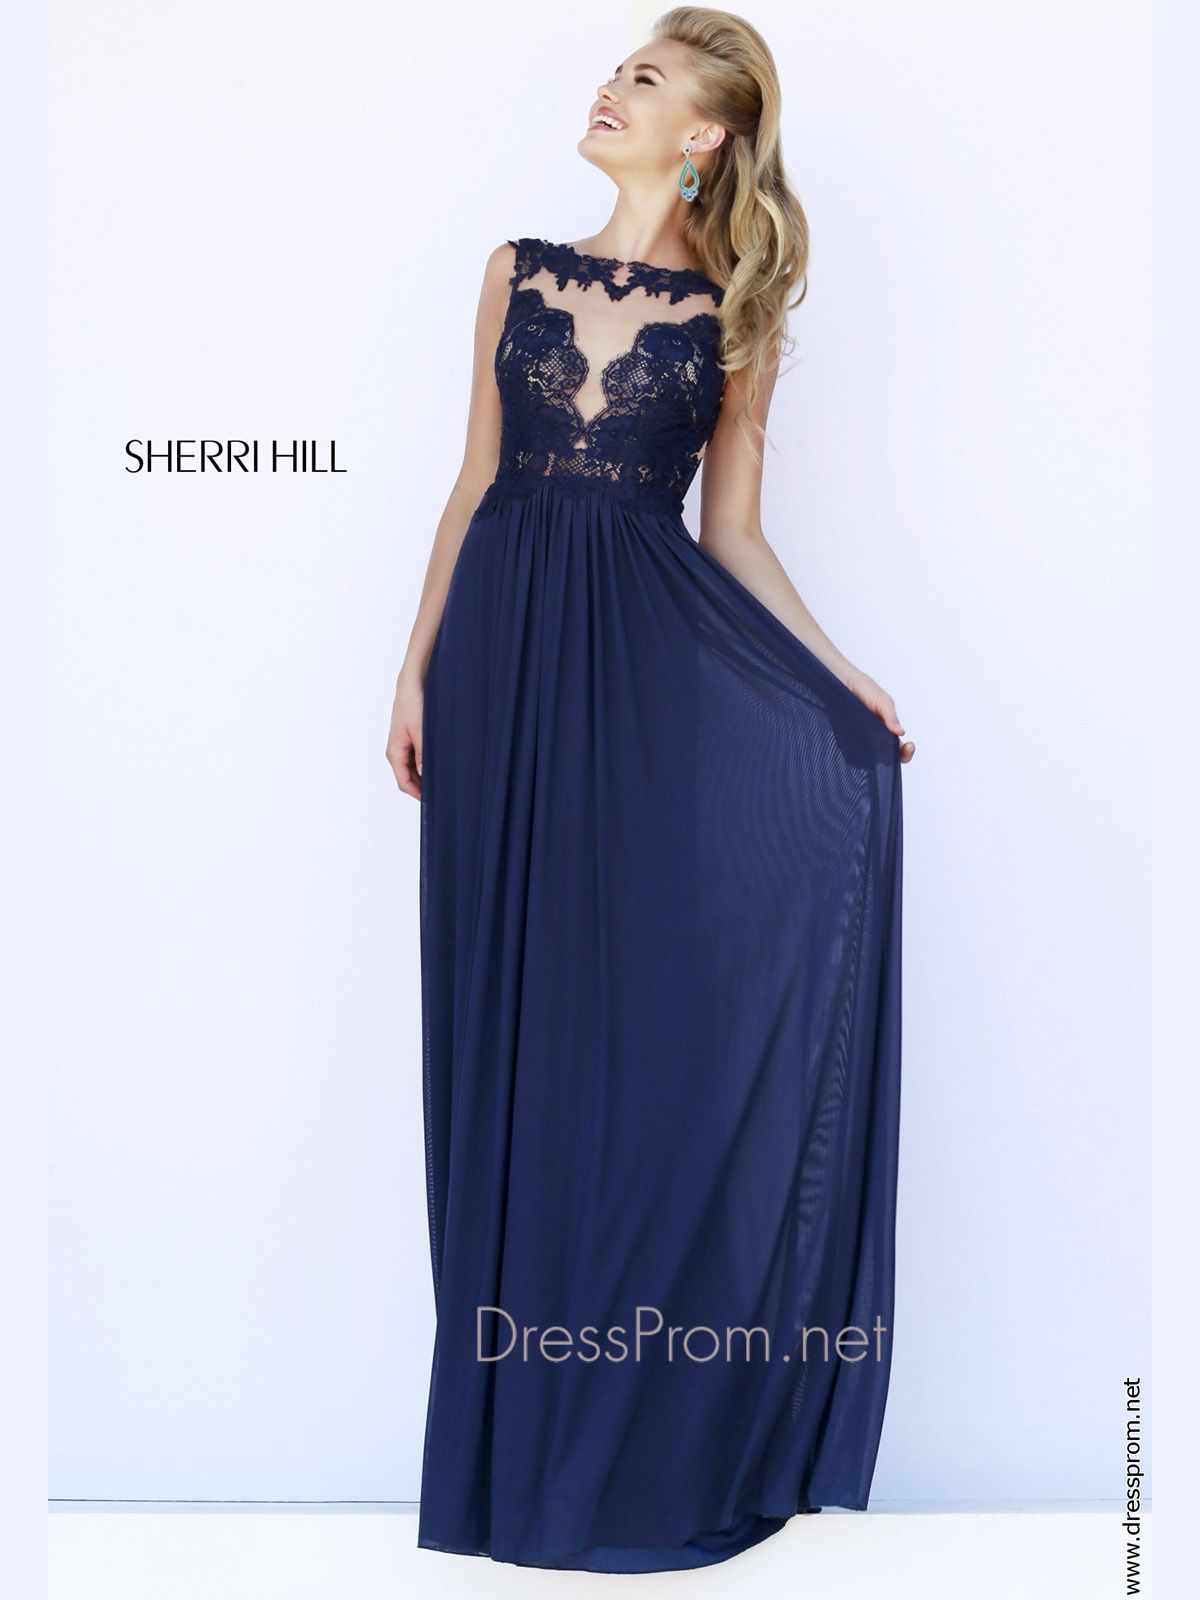 Make a statement in this romantic prom dress designed by sherri